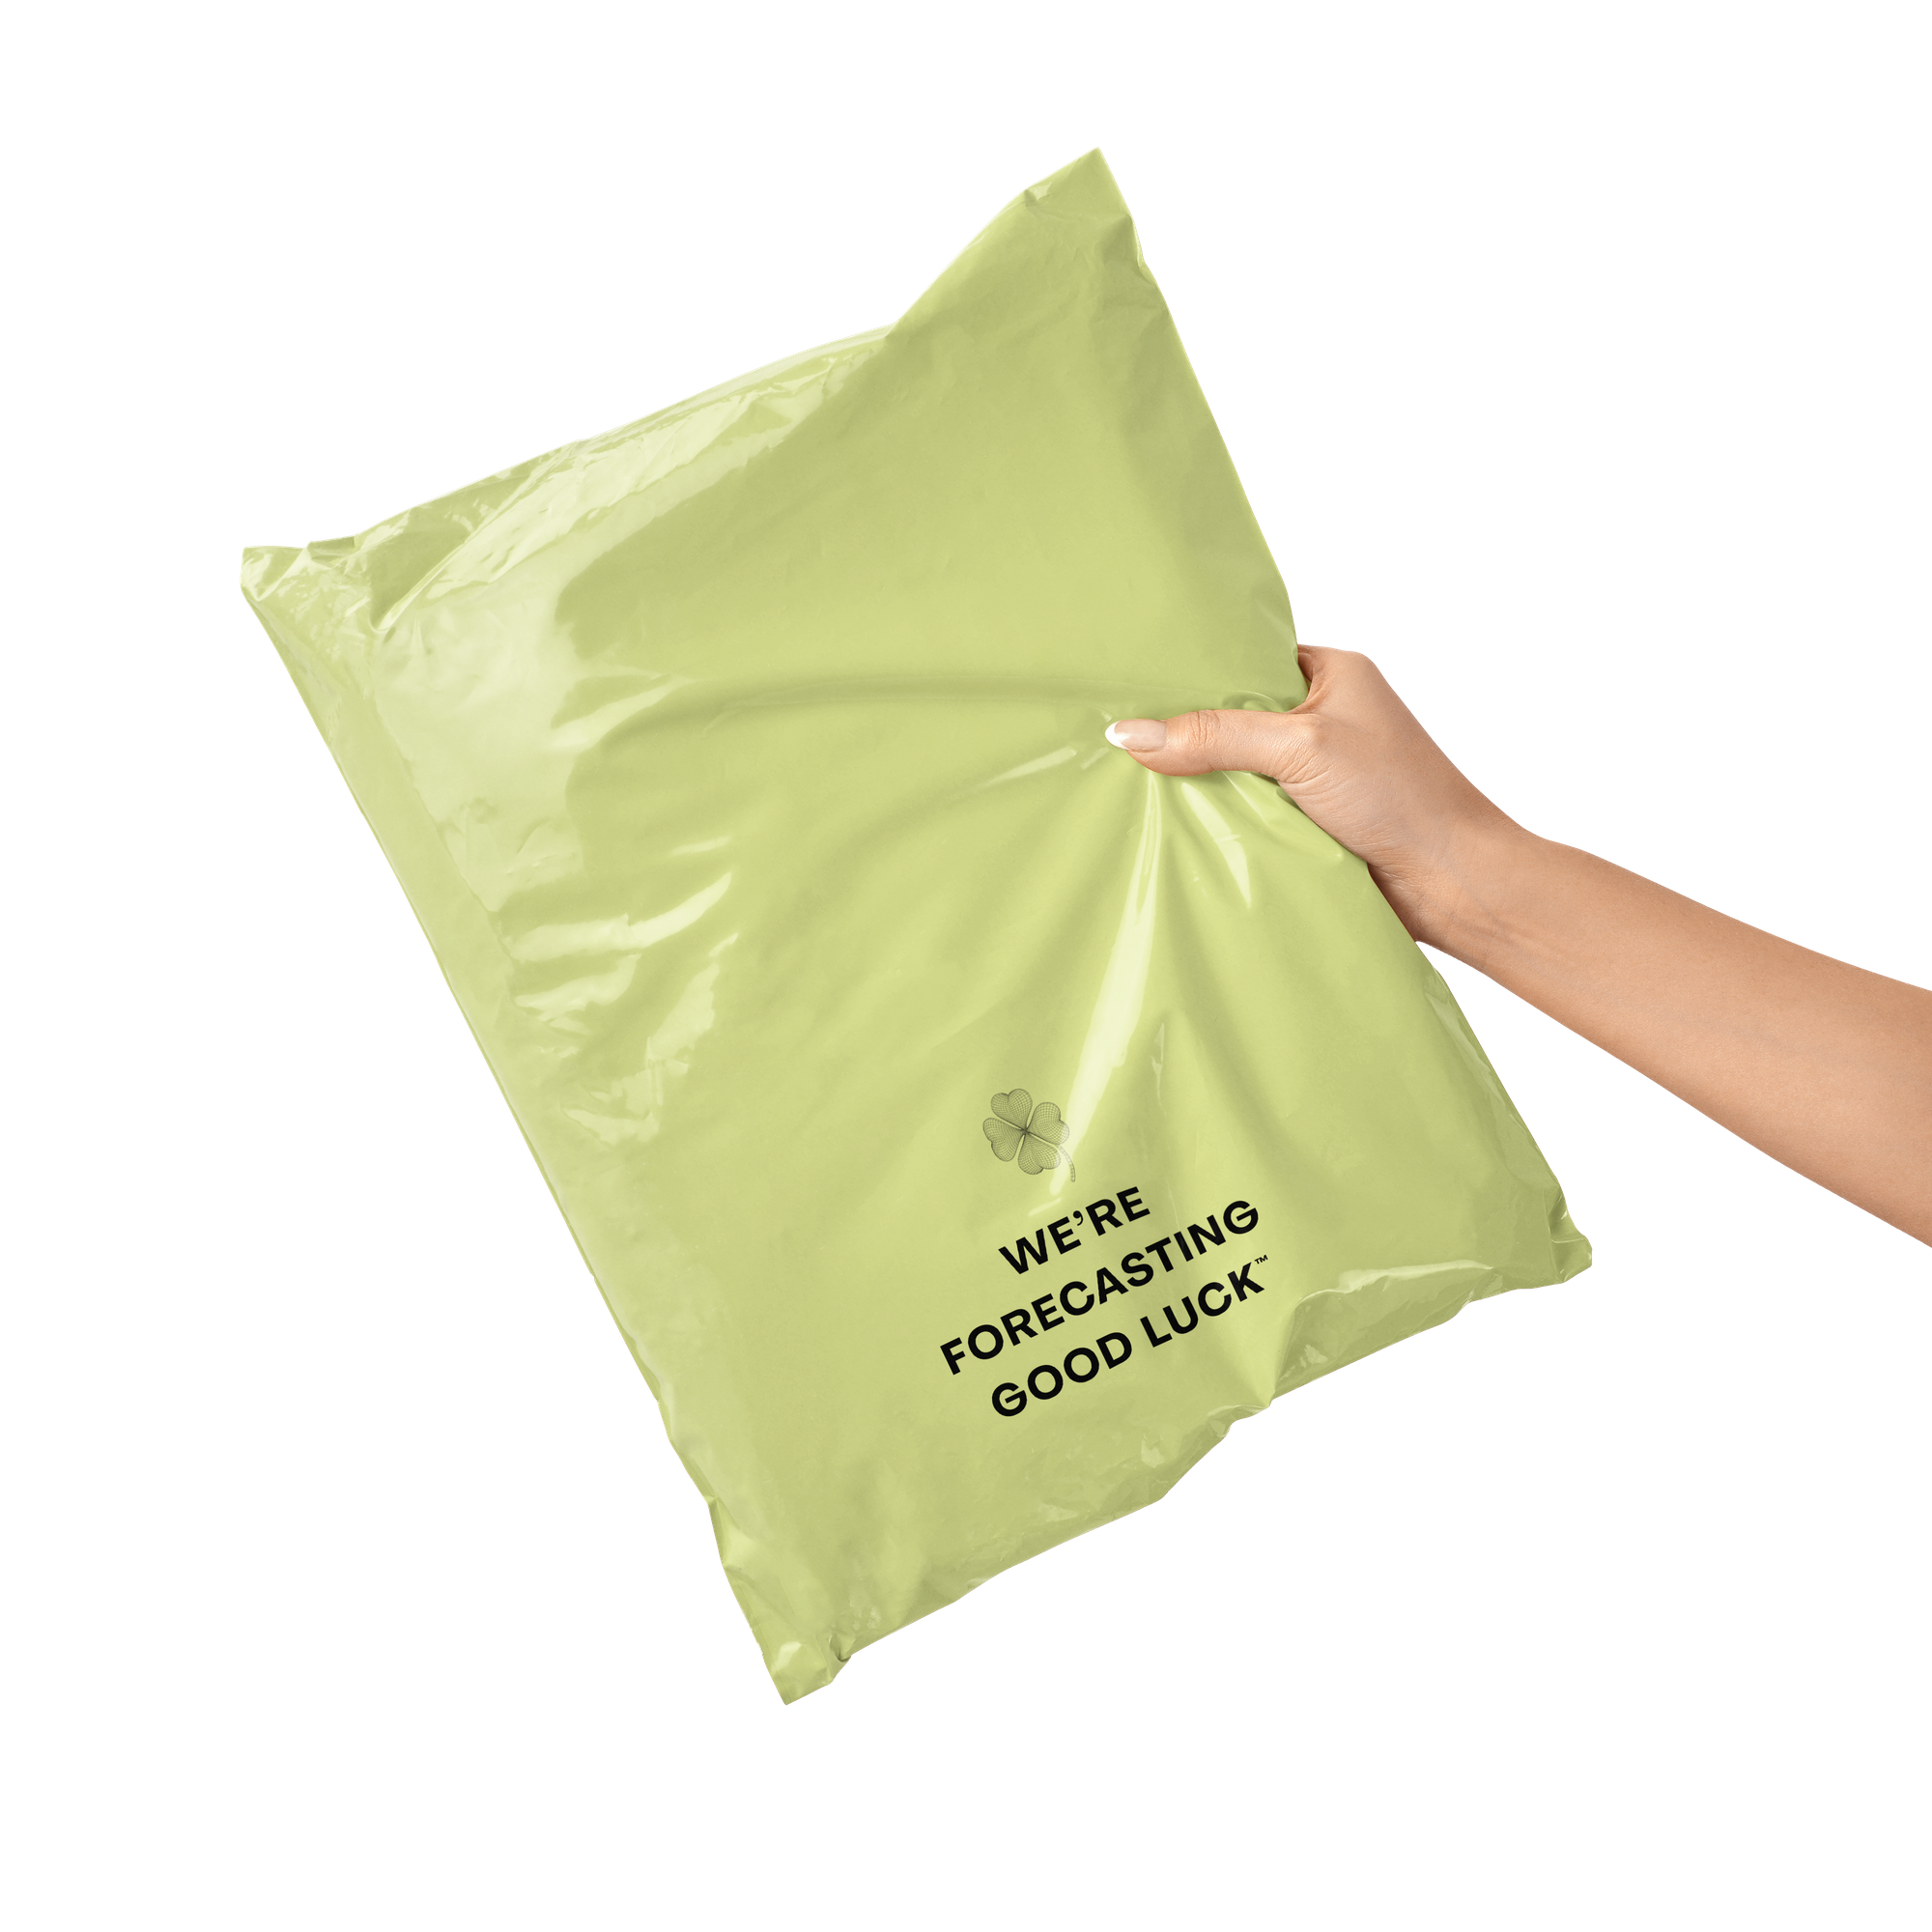 Sheertex Compostable Mailer by noissue